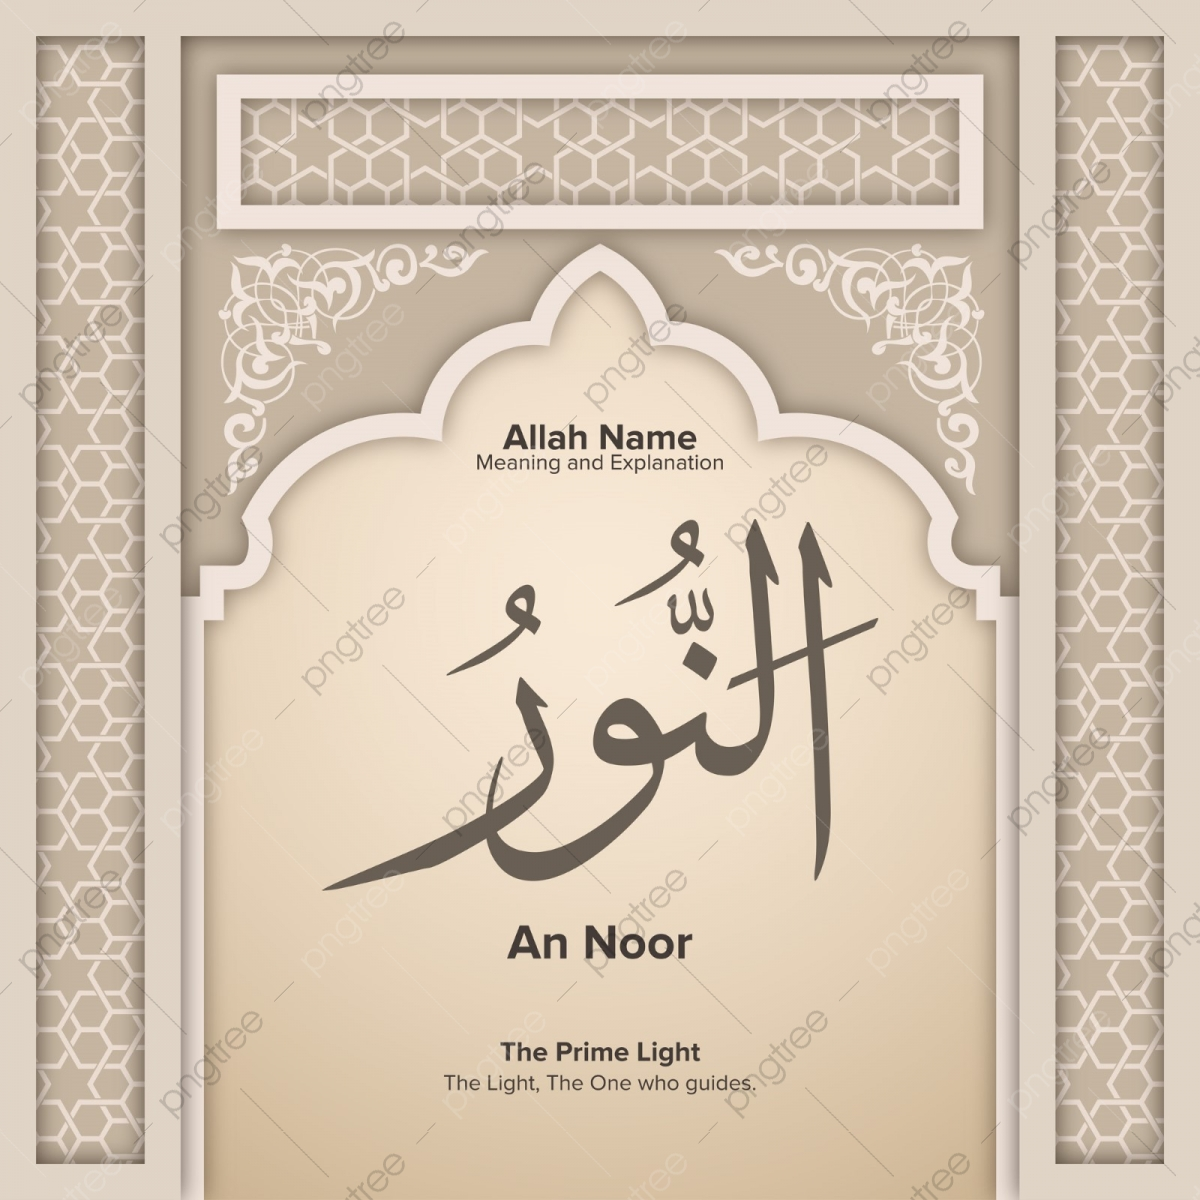 An Noor 99 Names Of Allah With Meaning And Explanation, Al